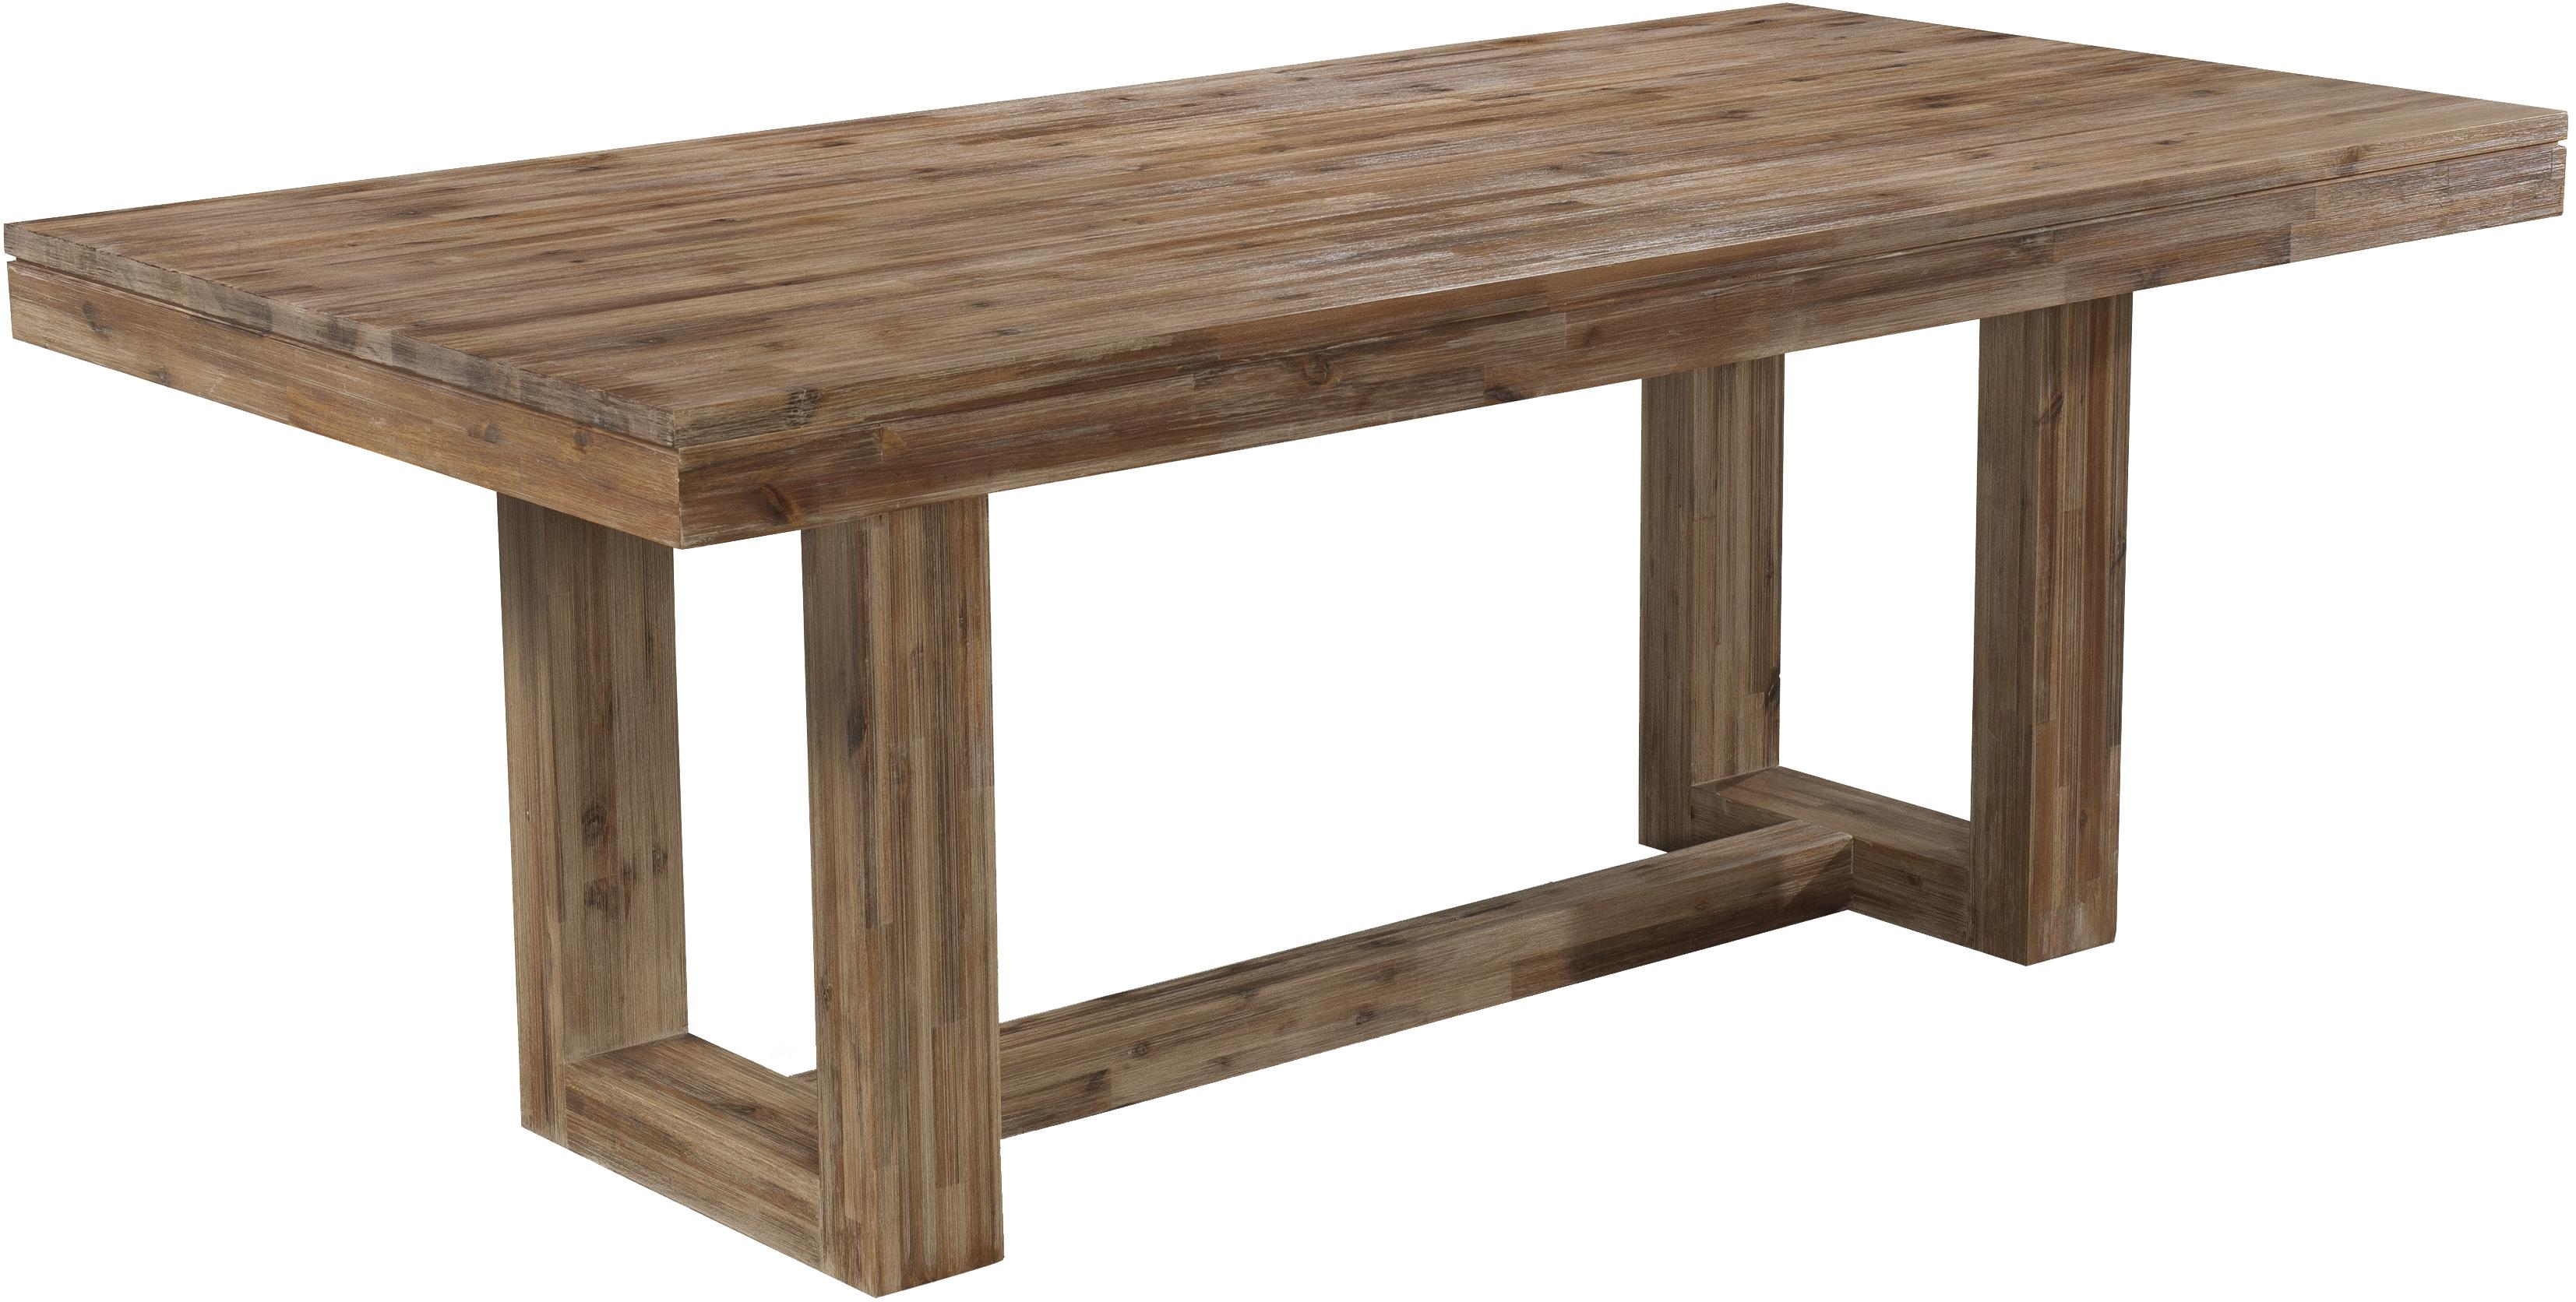 Six Piece Modern Rustic Rectangular Trestle Table With Ladderback Side Chairs Dining Bench Set  sc 1 st  Castrophotos & Rustic Dining Table Set - Castrophotos